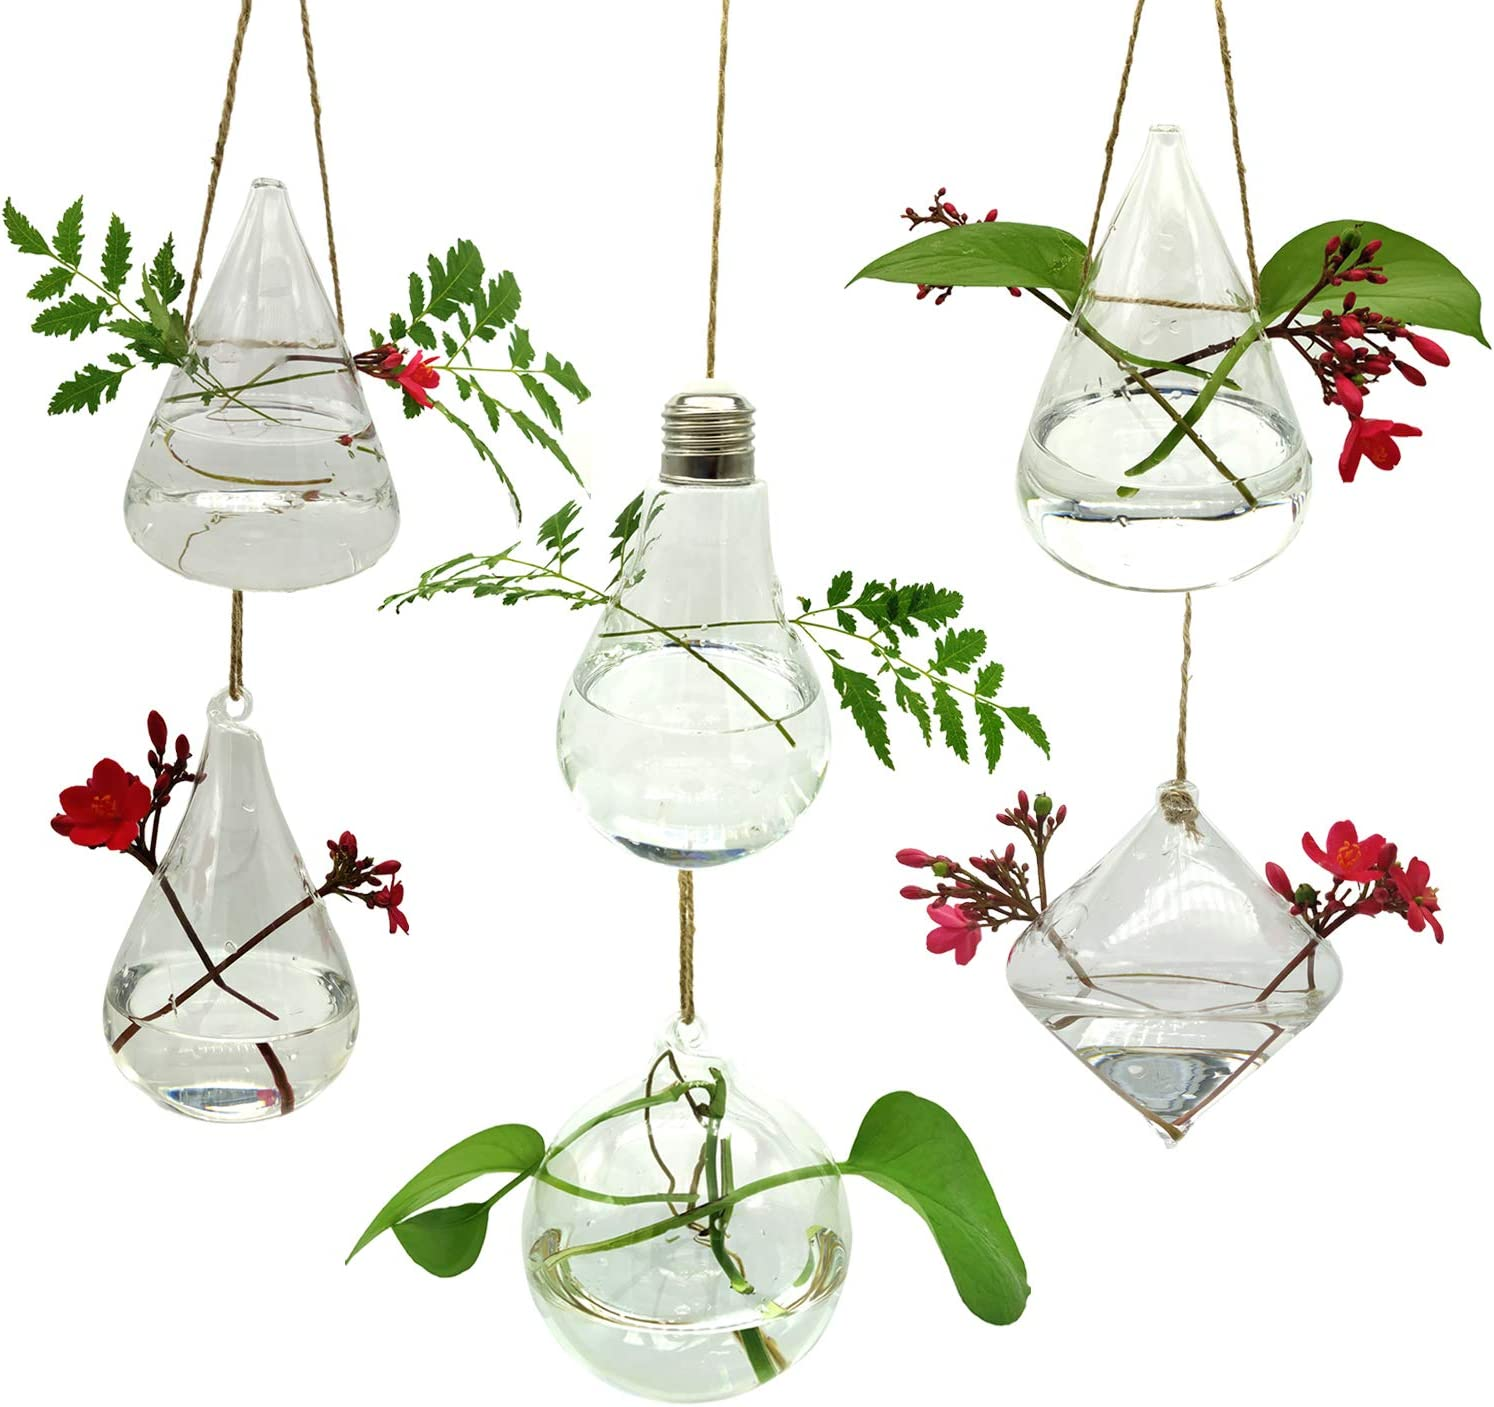 Glass Hanging Planters Succulent 6PCS/Set with Two Mini Holes and Twine Rope Terrarium Pots Containers Air Plant Bud Flower Vase Indoor Outdoor for Home, Garden, Weddding, Party, Anniversary.